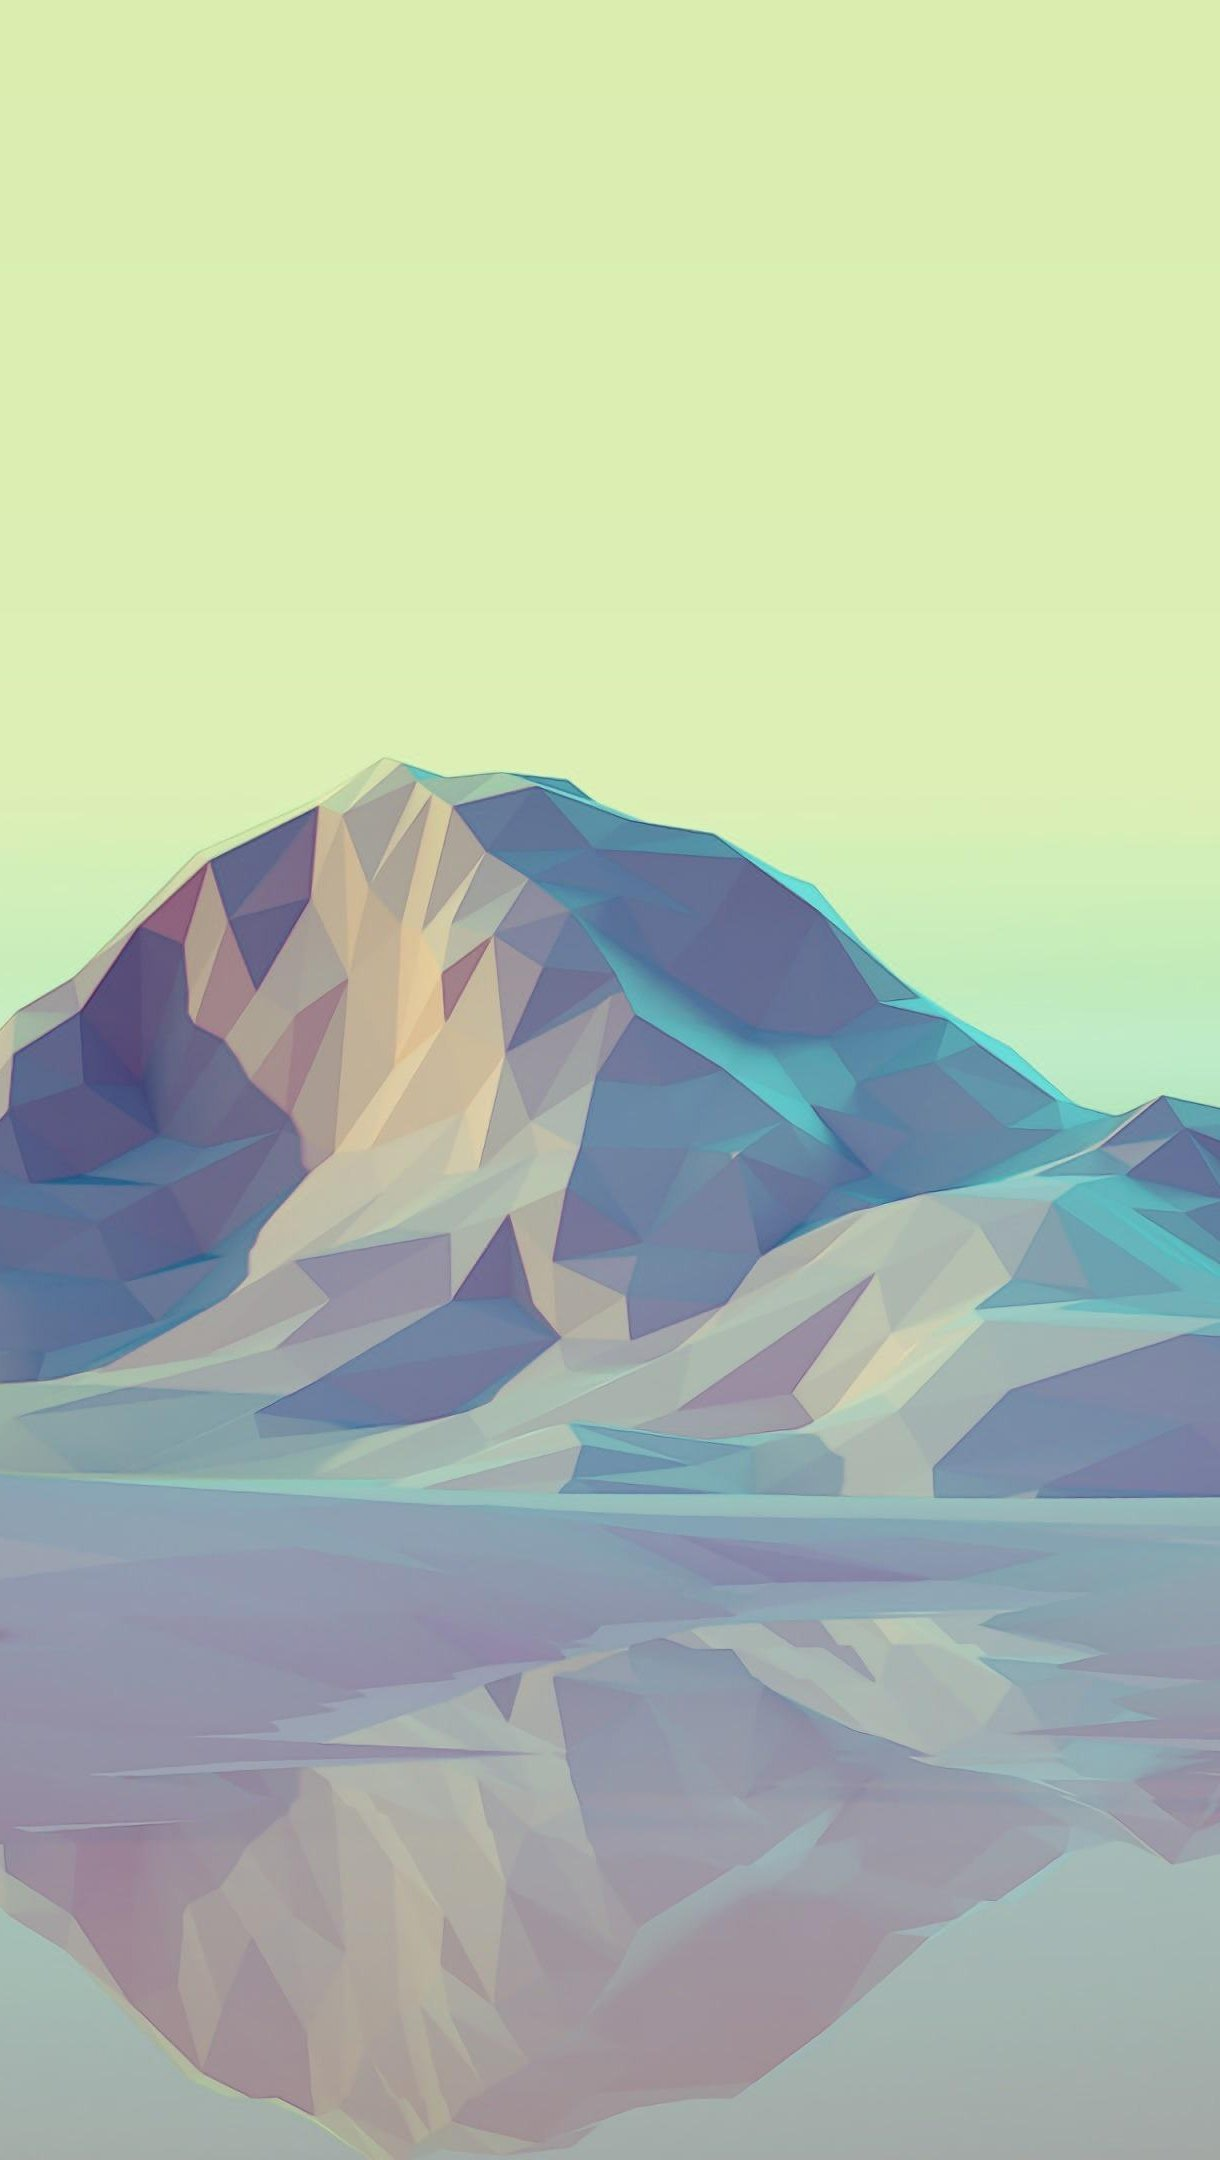 Wallpaper Mountains 3D Low Poly Vertical